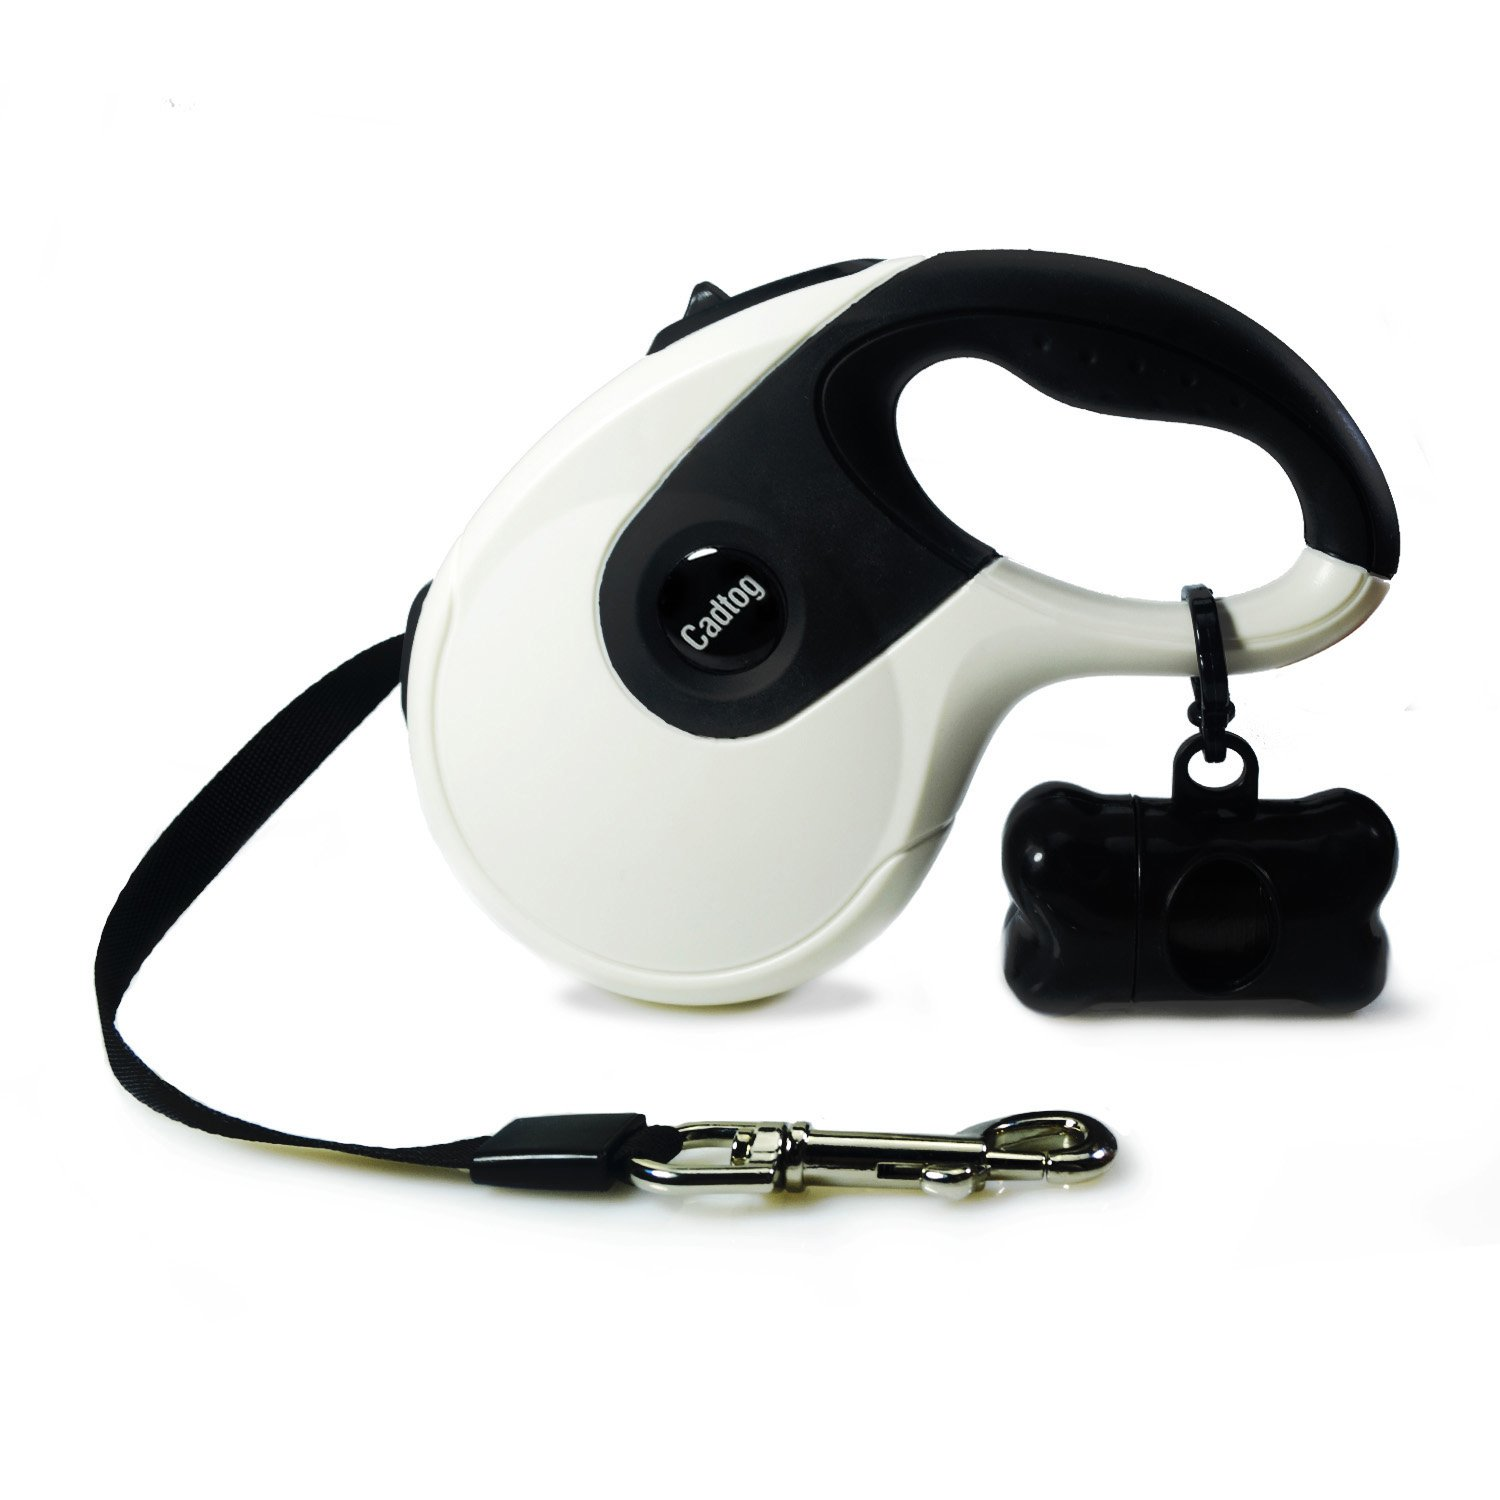 Cadtog Retractable Dog Leash,16 ft Dog Walking Leash for Medium Large Dogs up to 110lbs,One Button Break & Lock, Dog Waste Dispenser and Bags included (Black&White)